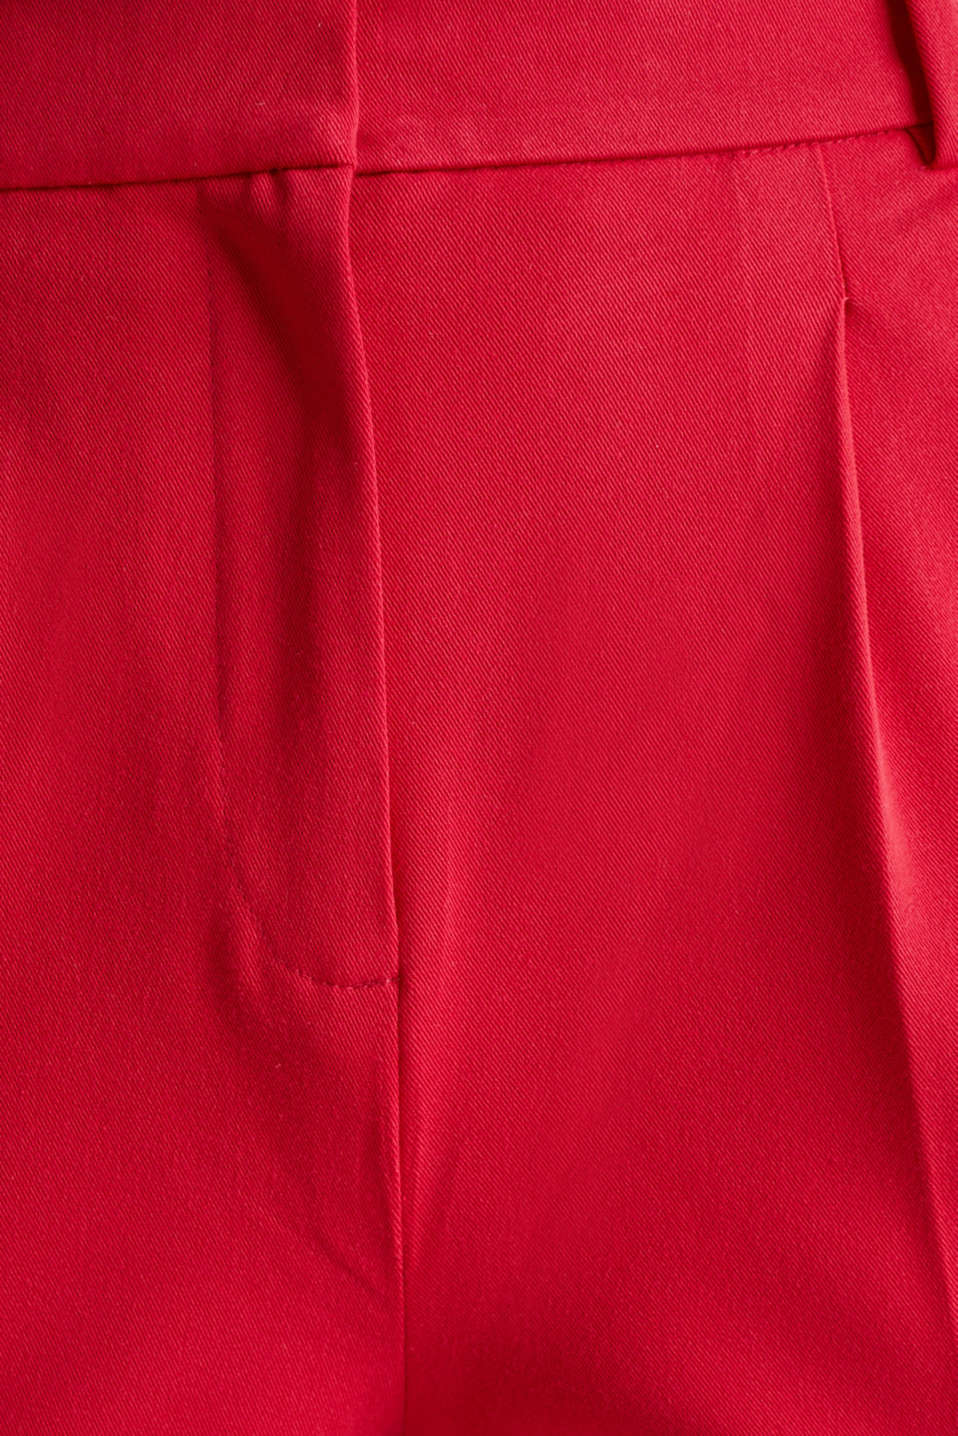 MODERN Mix + Match trousers with a high-rise waist, RED, detail image number 4